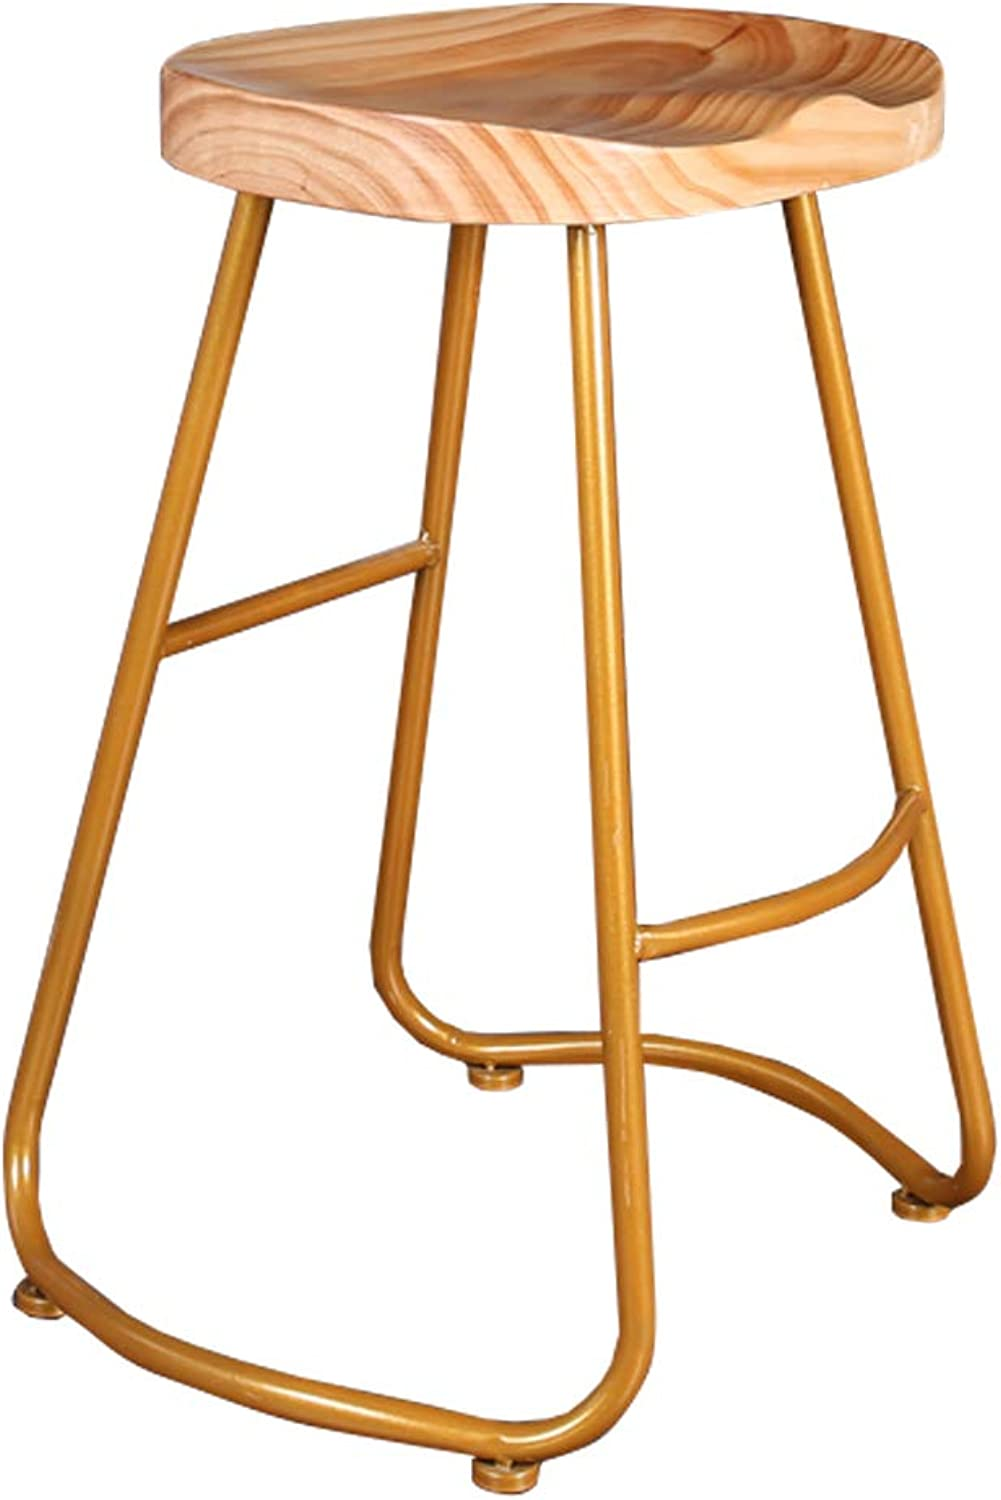 17.7  25.6  29.5  Pub Counter Height Barstool with Wood Seat and Footrest - gold Metal Base - Kitchen Chair for Restaurant Bar Cafe